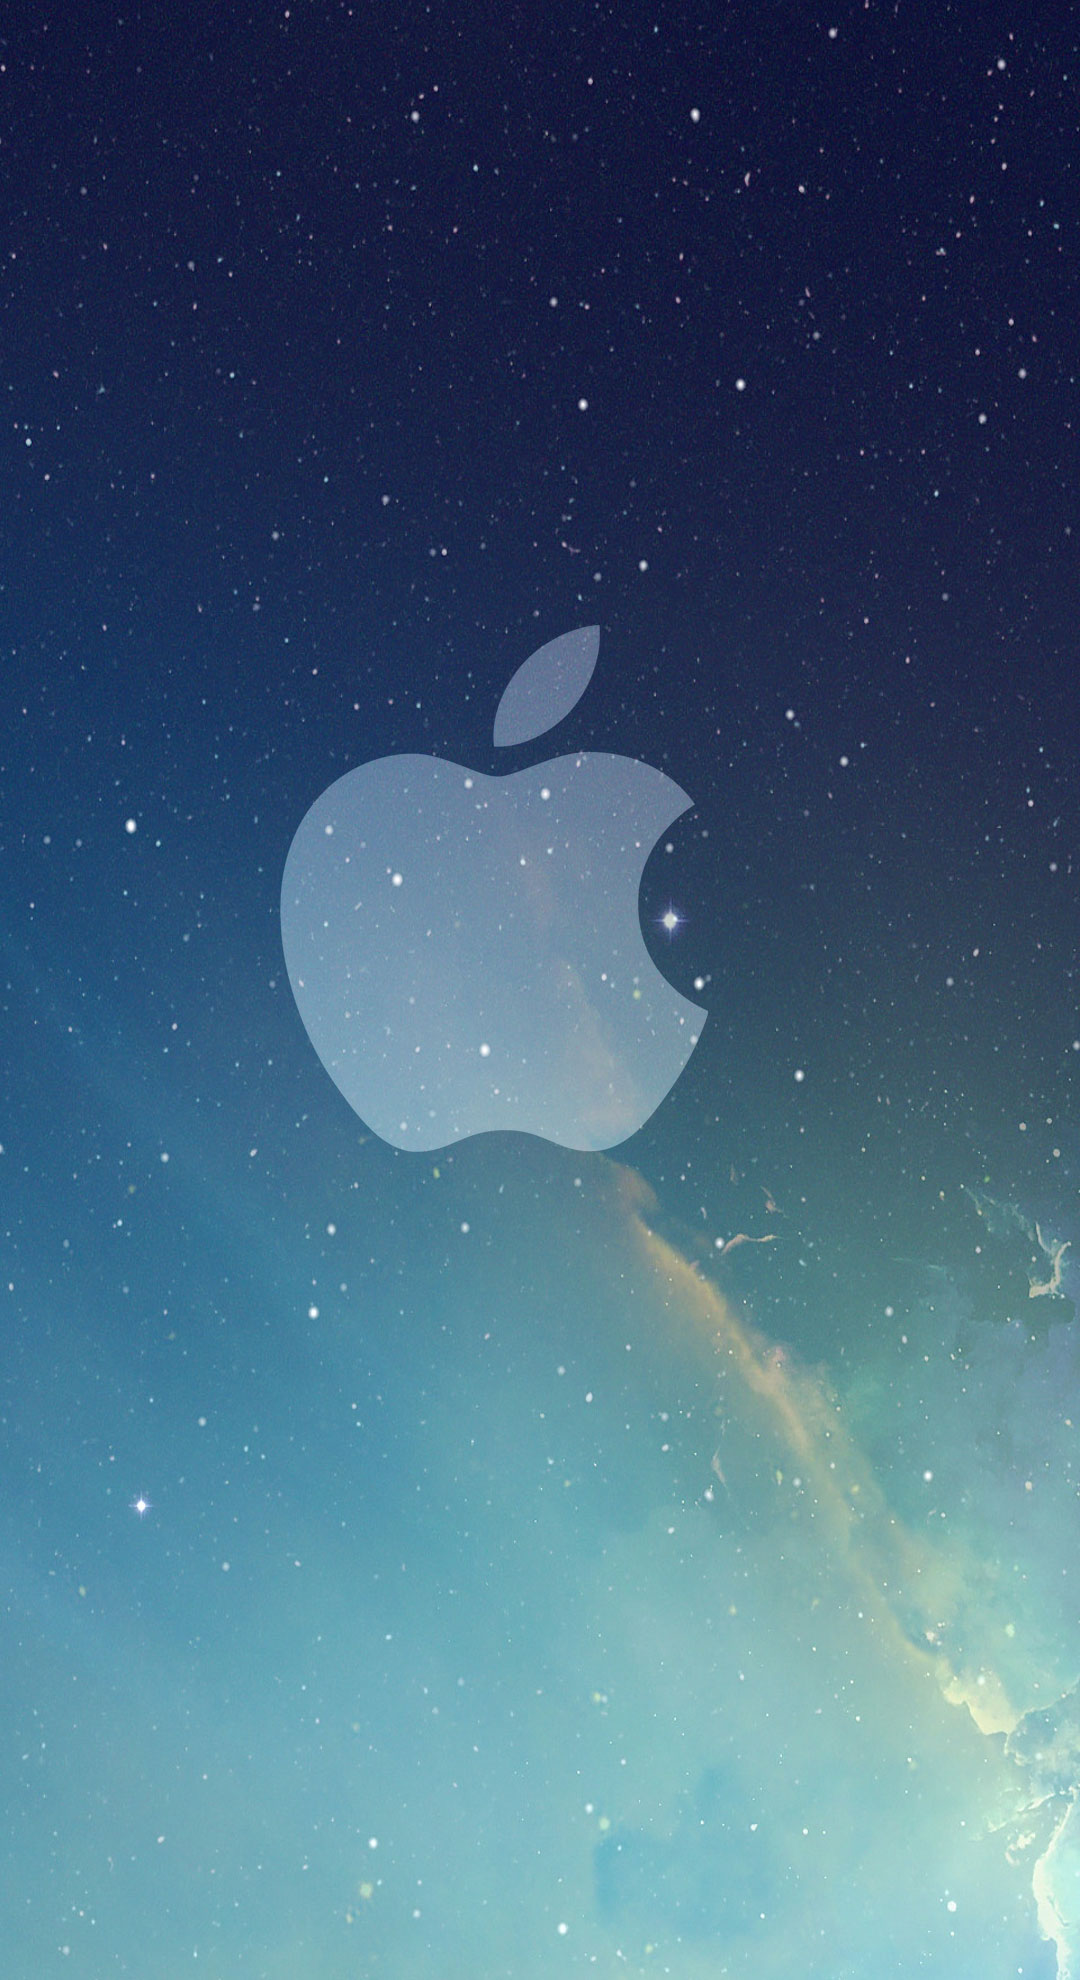 Fondo de pantalla semanal estrellas con el logo de apple for Imagenes para iphone